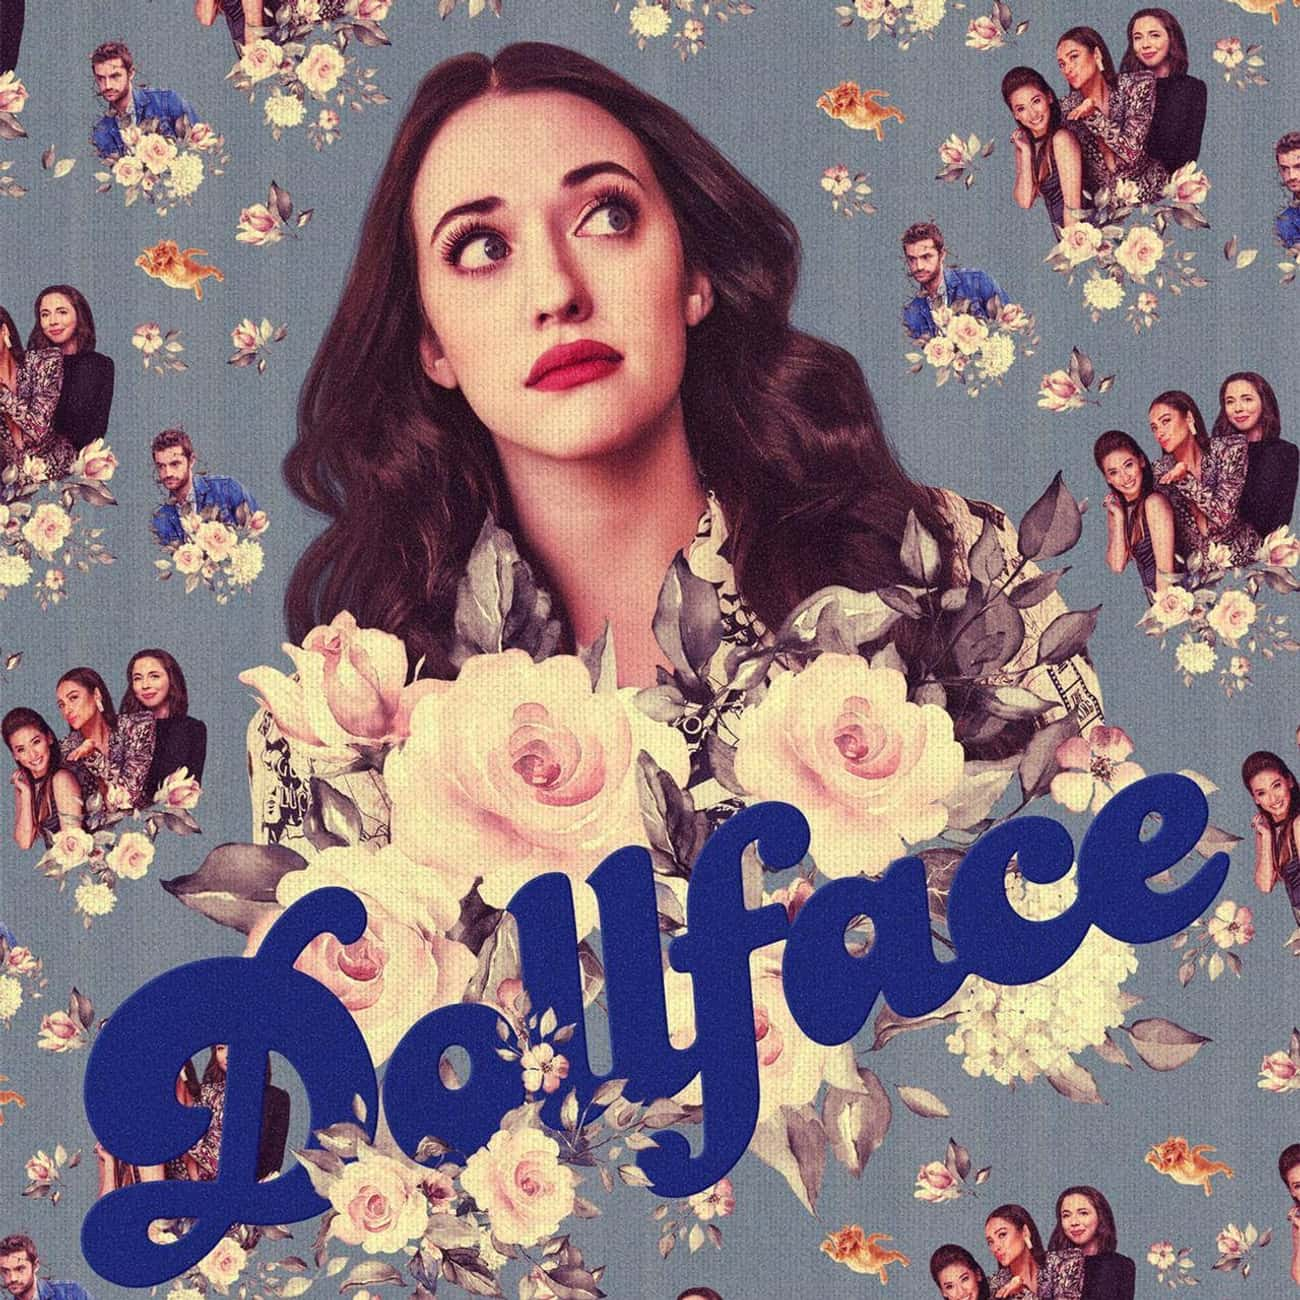 Dollface is listed (or ranked) 1 on the list What To Watch If You Love 'Girls'